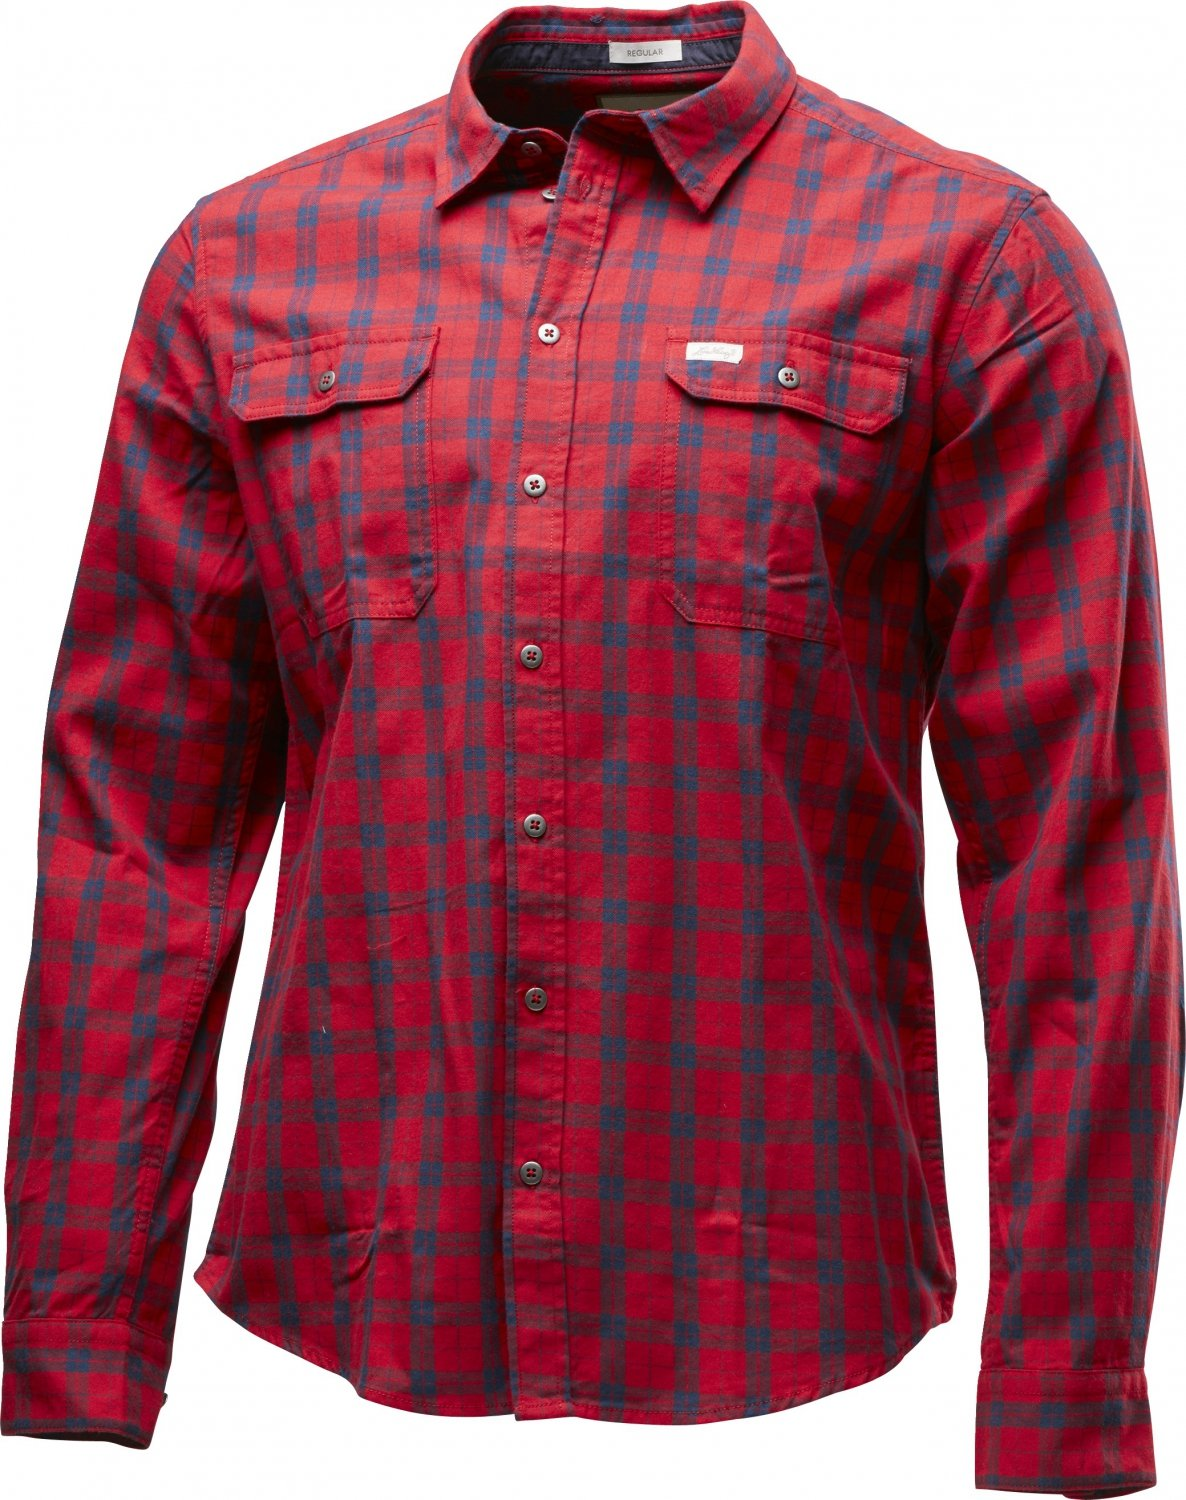 Lundhags Flanell Shirt Outdoorhemd (ROT)